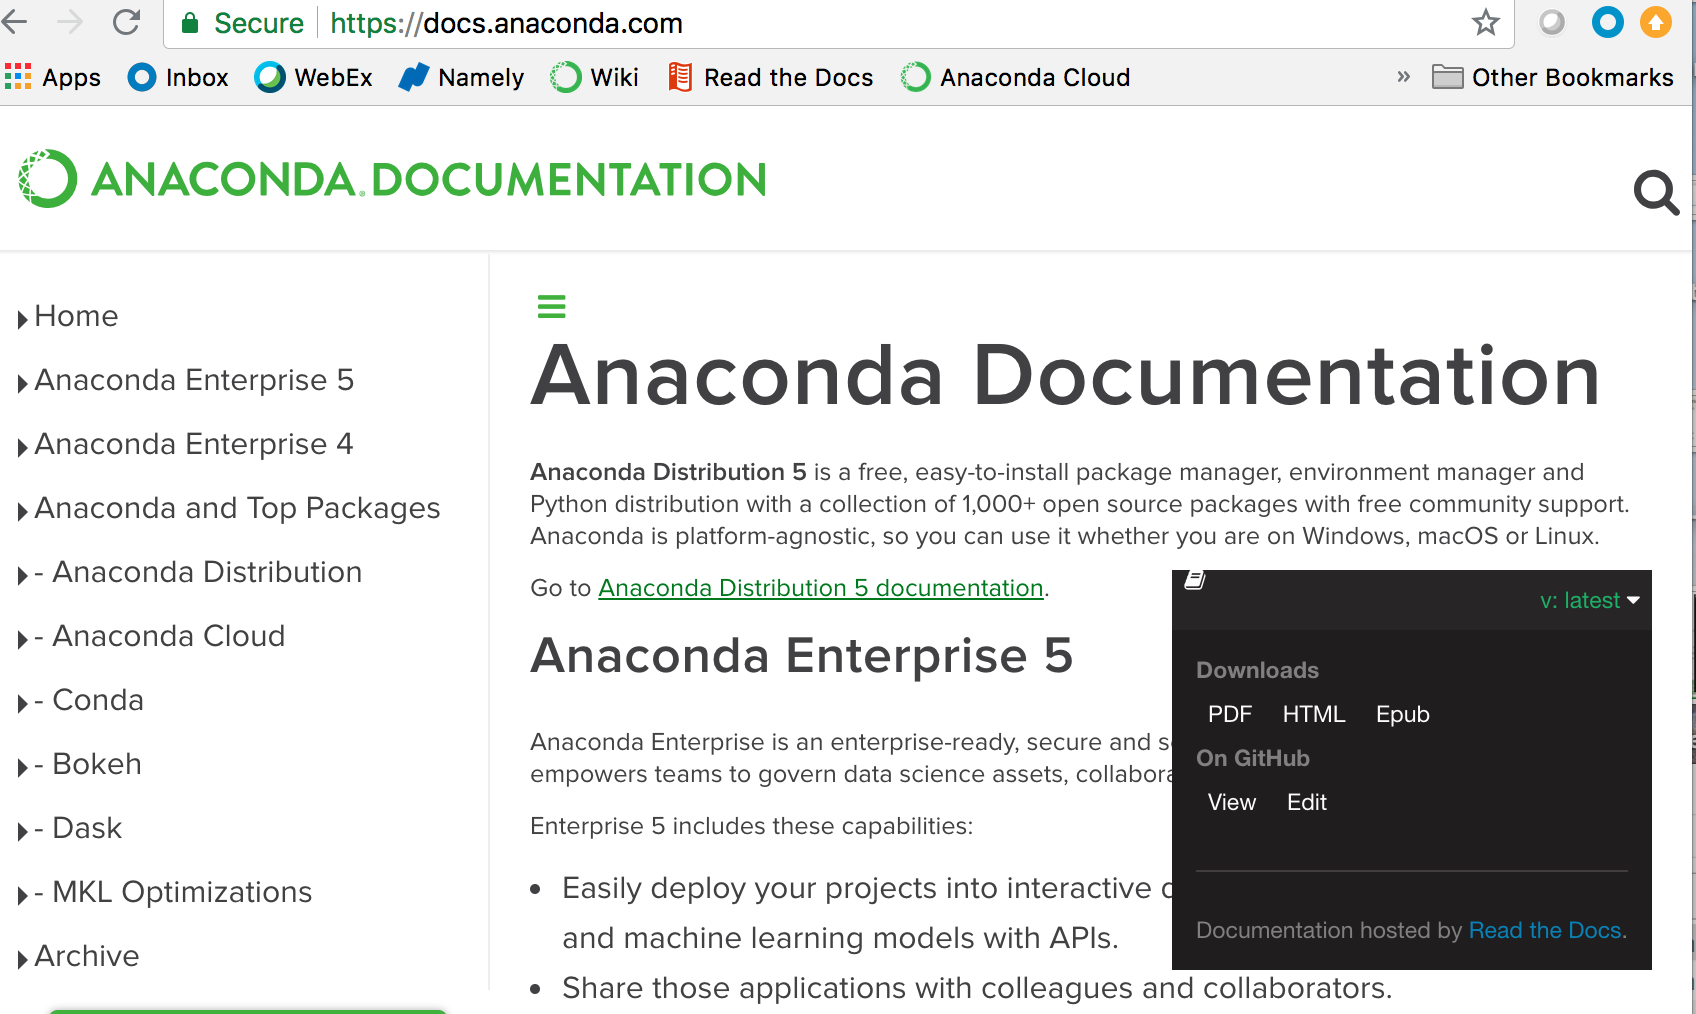 Offline manuals for python package in Anaconda: don't you